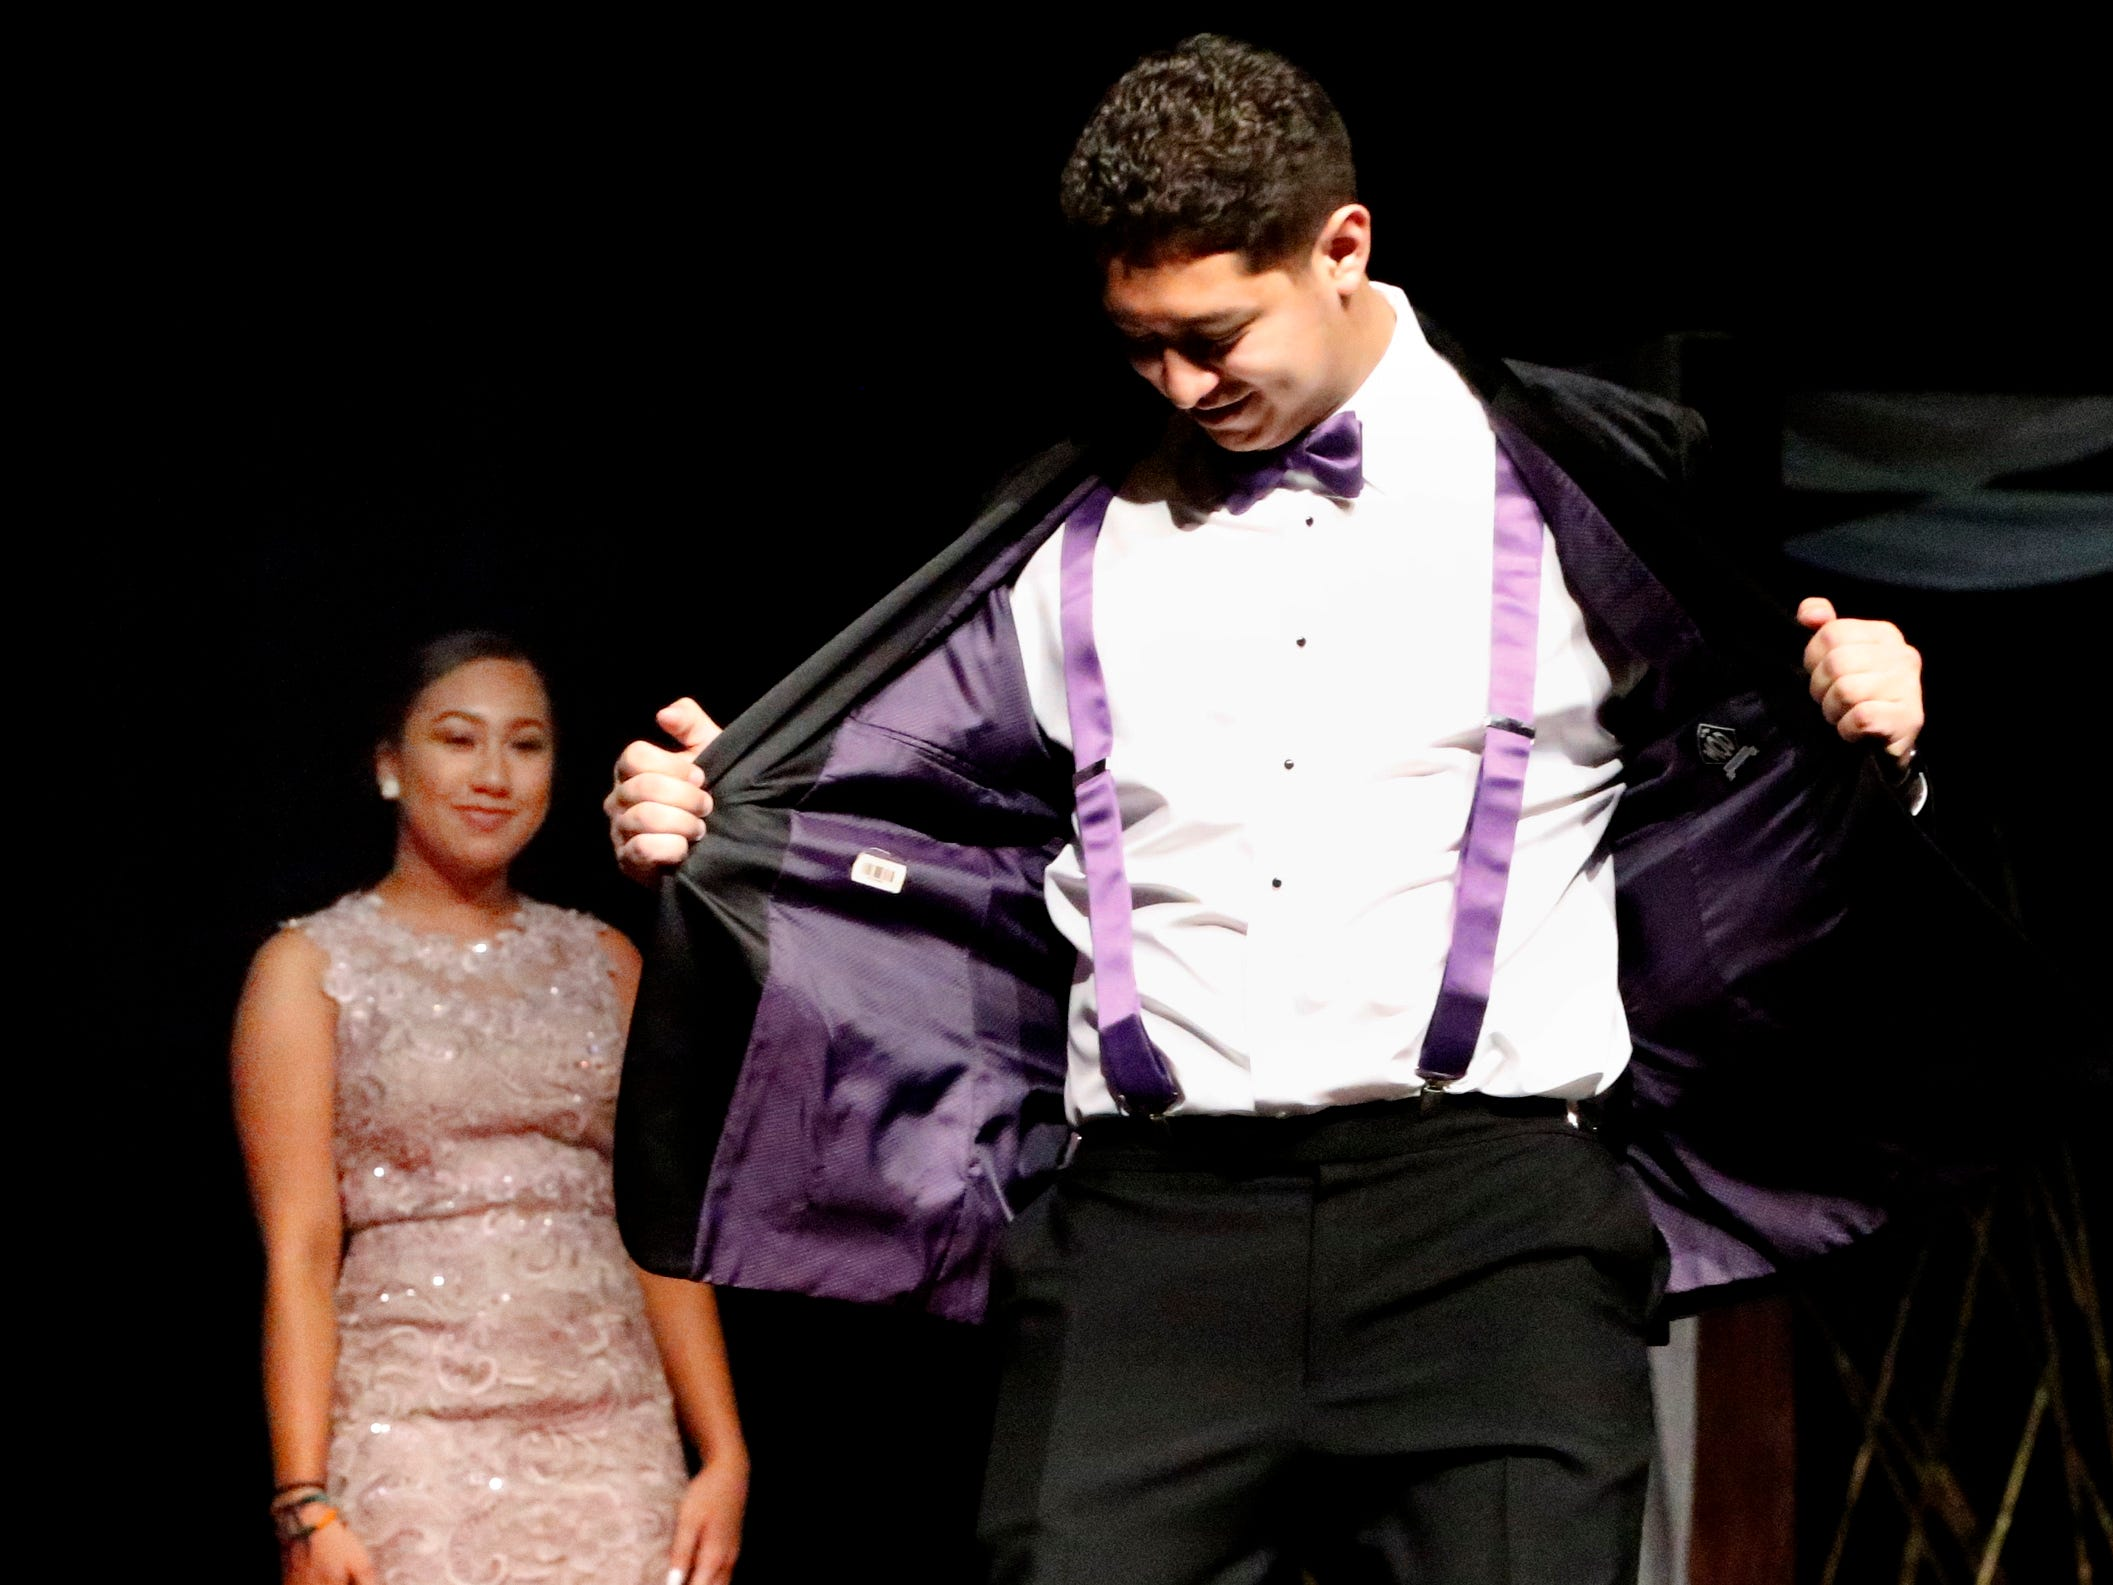 Chris Palacios shows off his tux at the end of the runway during the Siegel Prom Fashion show on Thursday, Feb. 14, 2019.